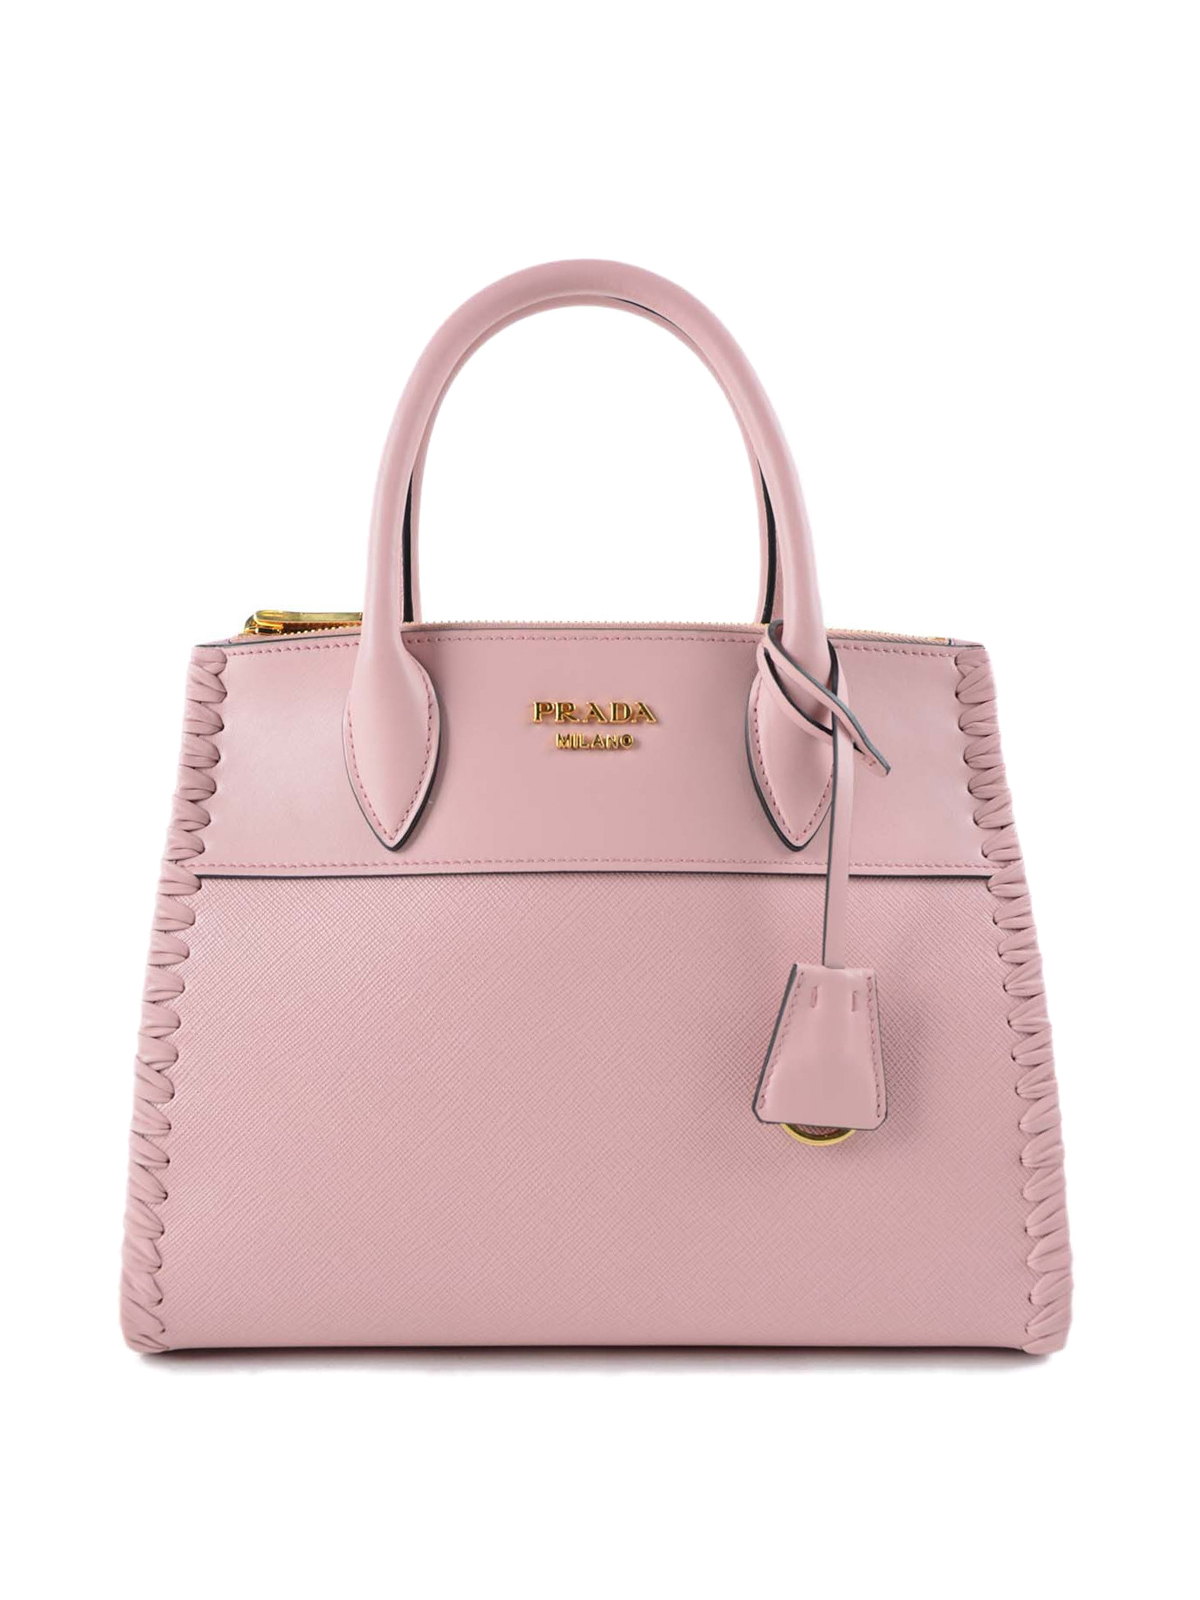 Paradigme leather bag by Prada - totes bags | Shop online ...